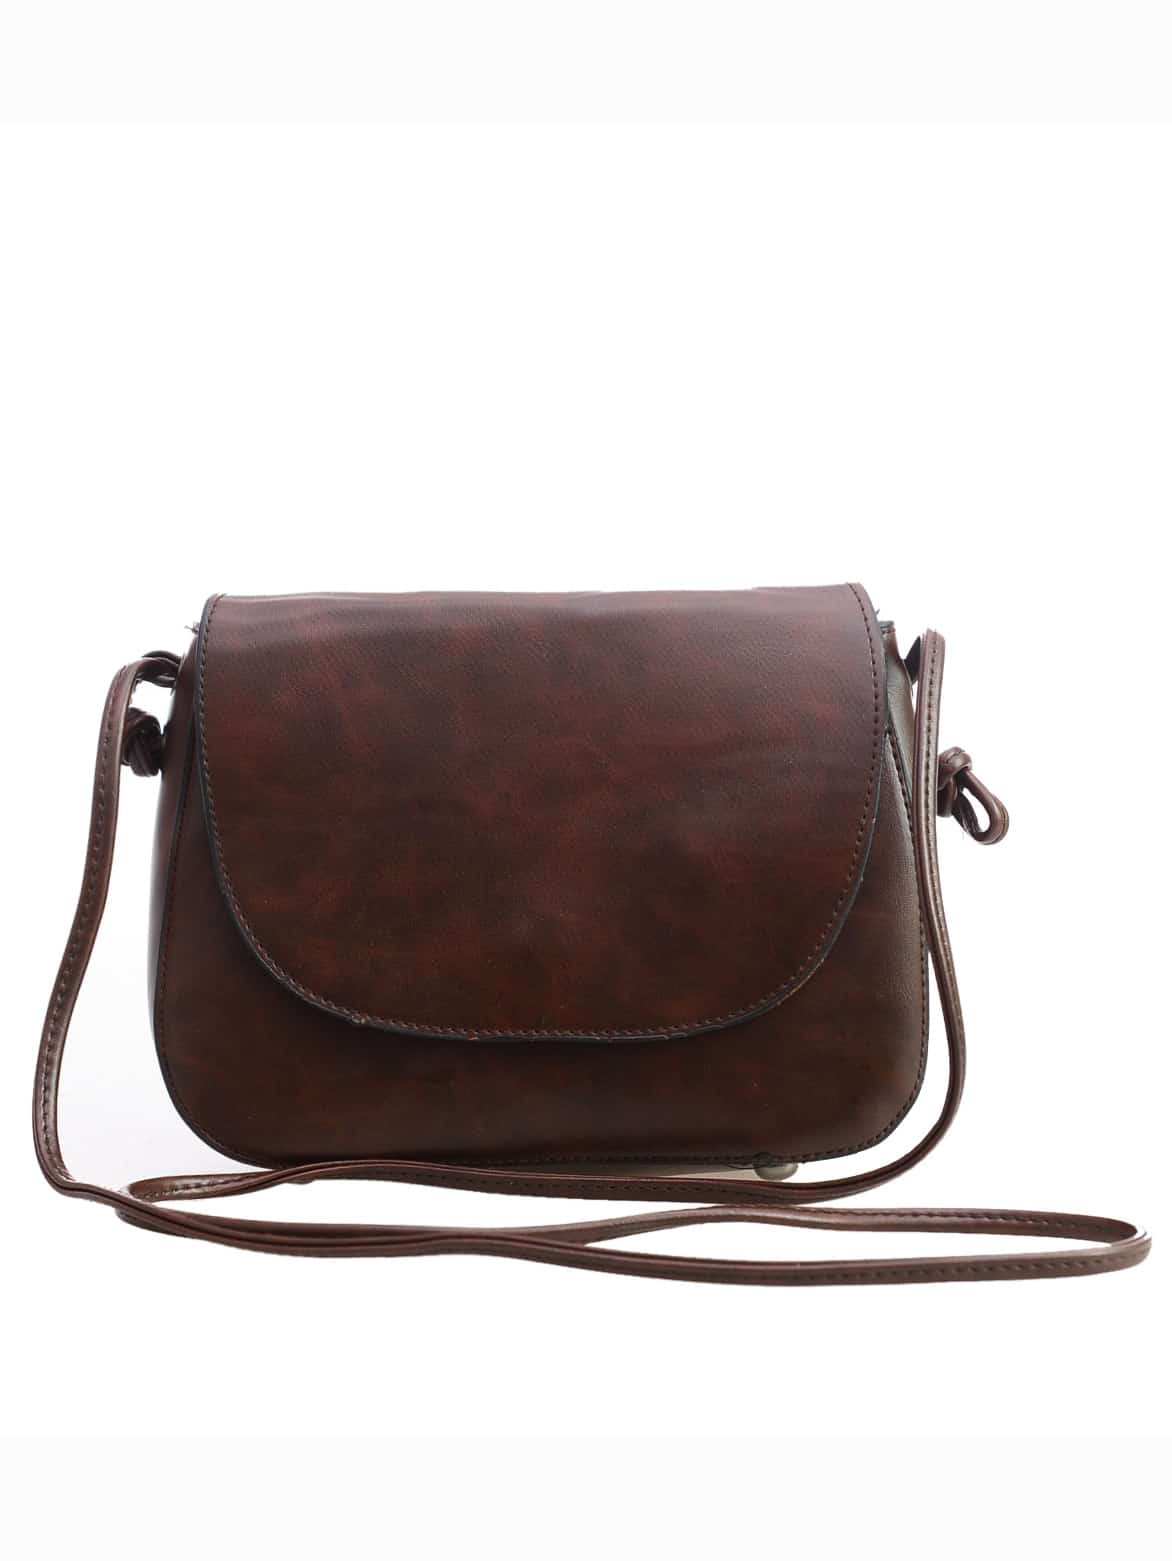 Фото Faux Leather Magnetic Closure Saddle Bag - Dark Brown. Купить с доставкой